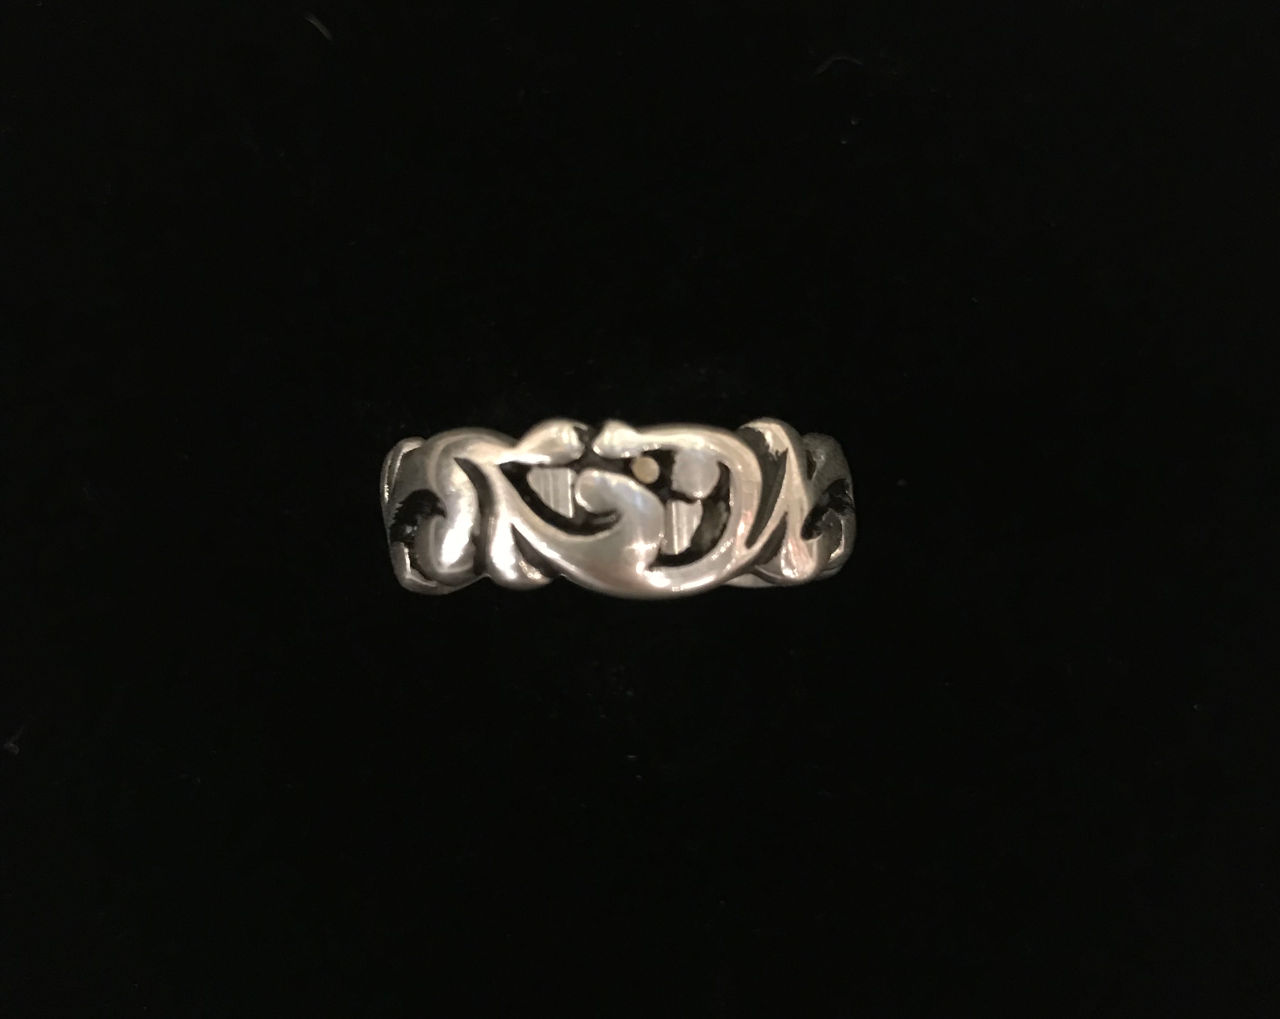 sterling silver ring with flowing lines that fit together without any open space